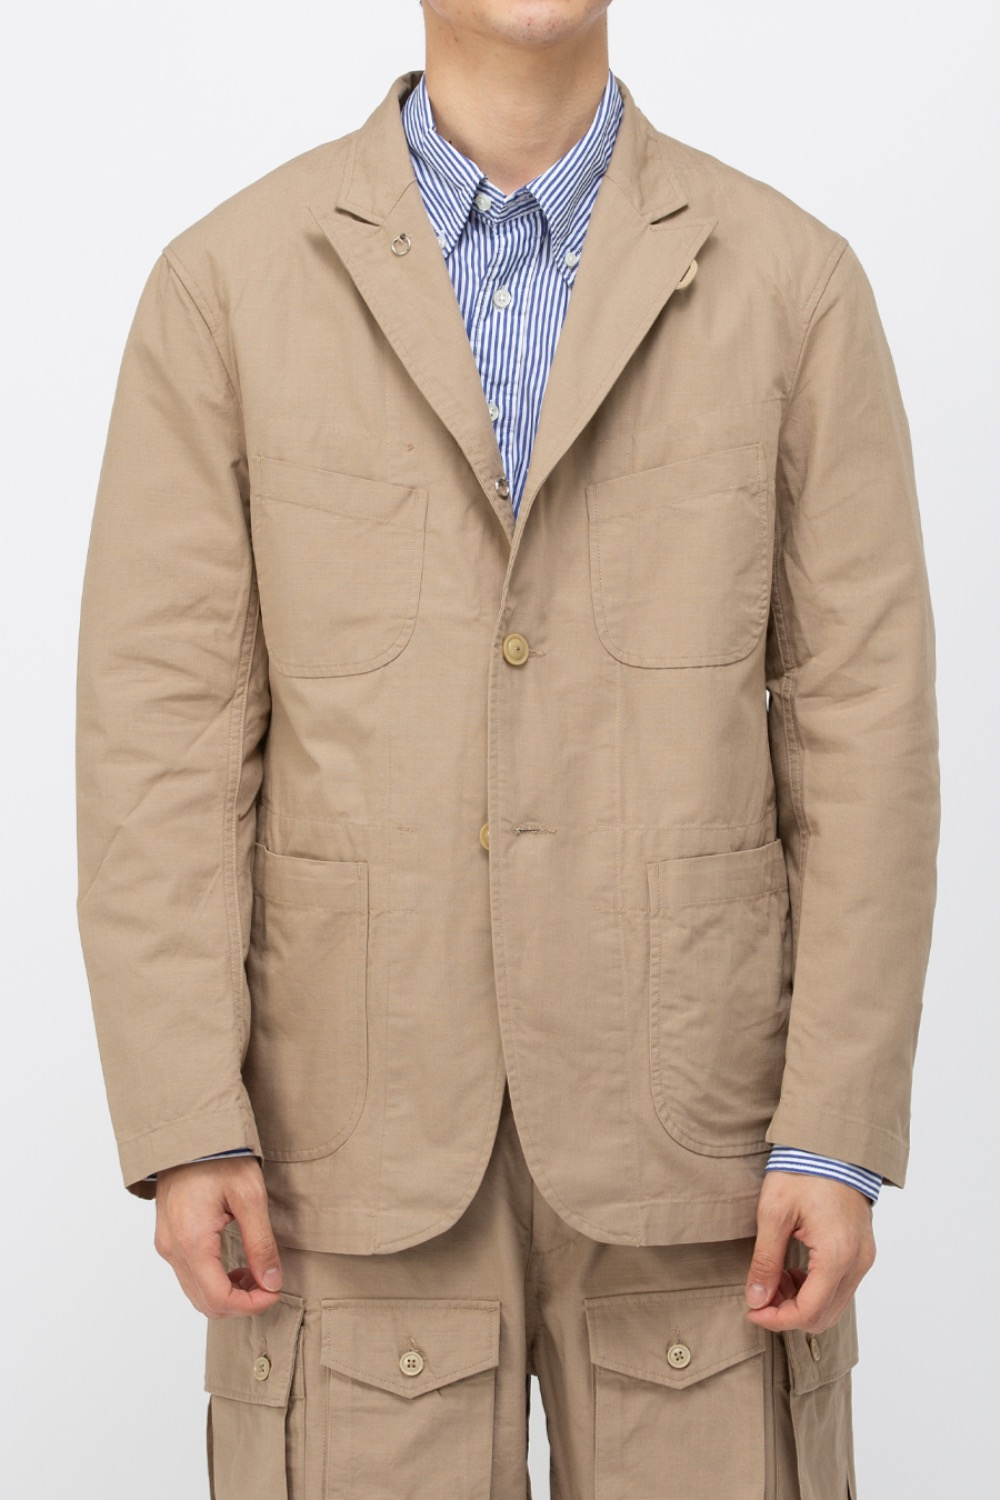 BEDFORD JACKET COTTON RIPSTOP KHAKI